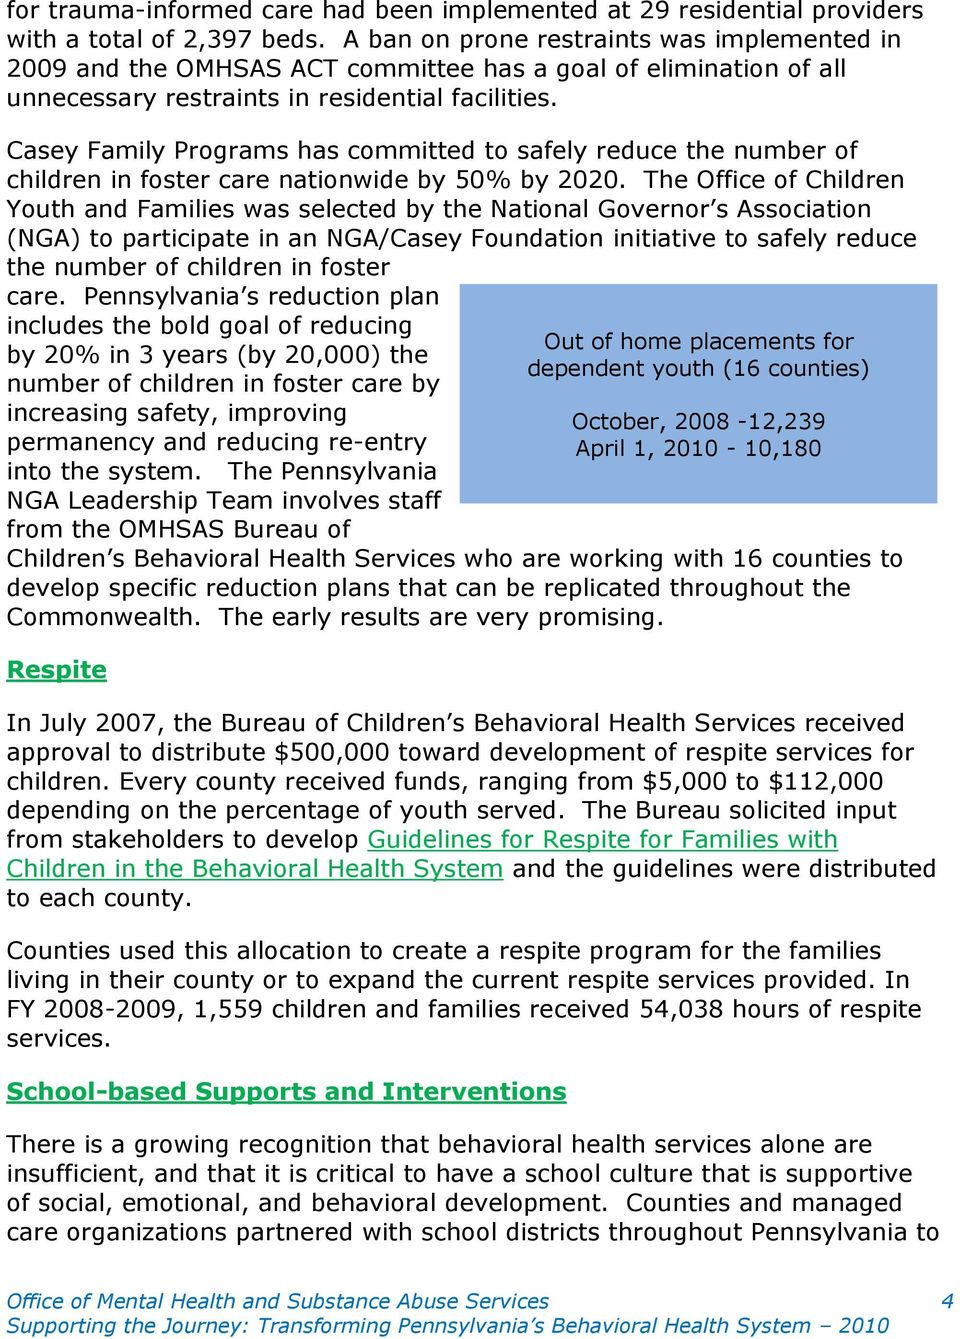 Casey Family Programs has committed to safely reduce the number of children in foster care nationwide by 50% by 2020.